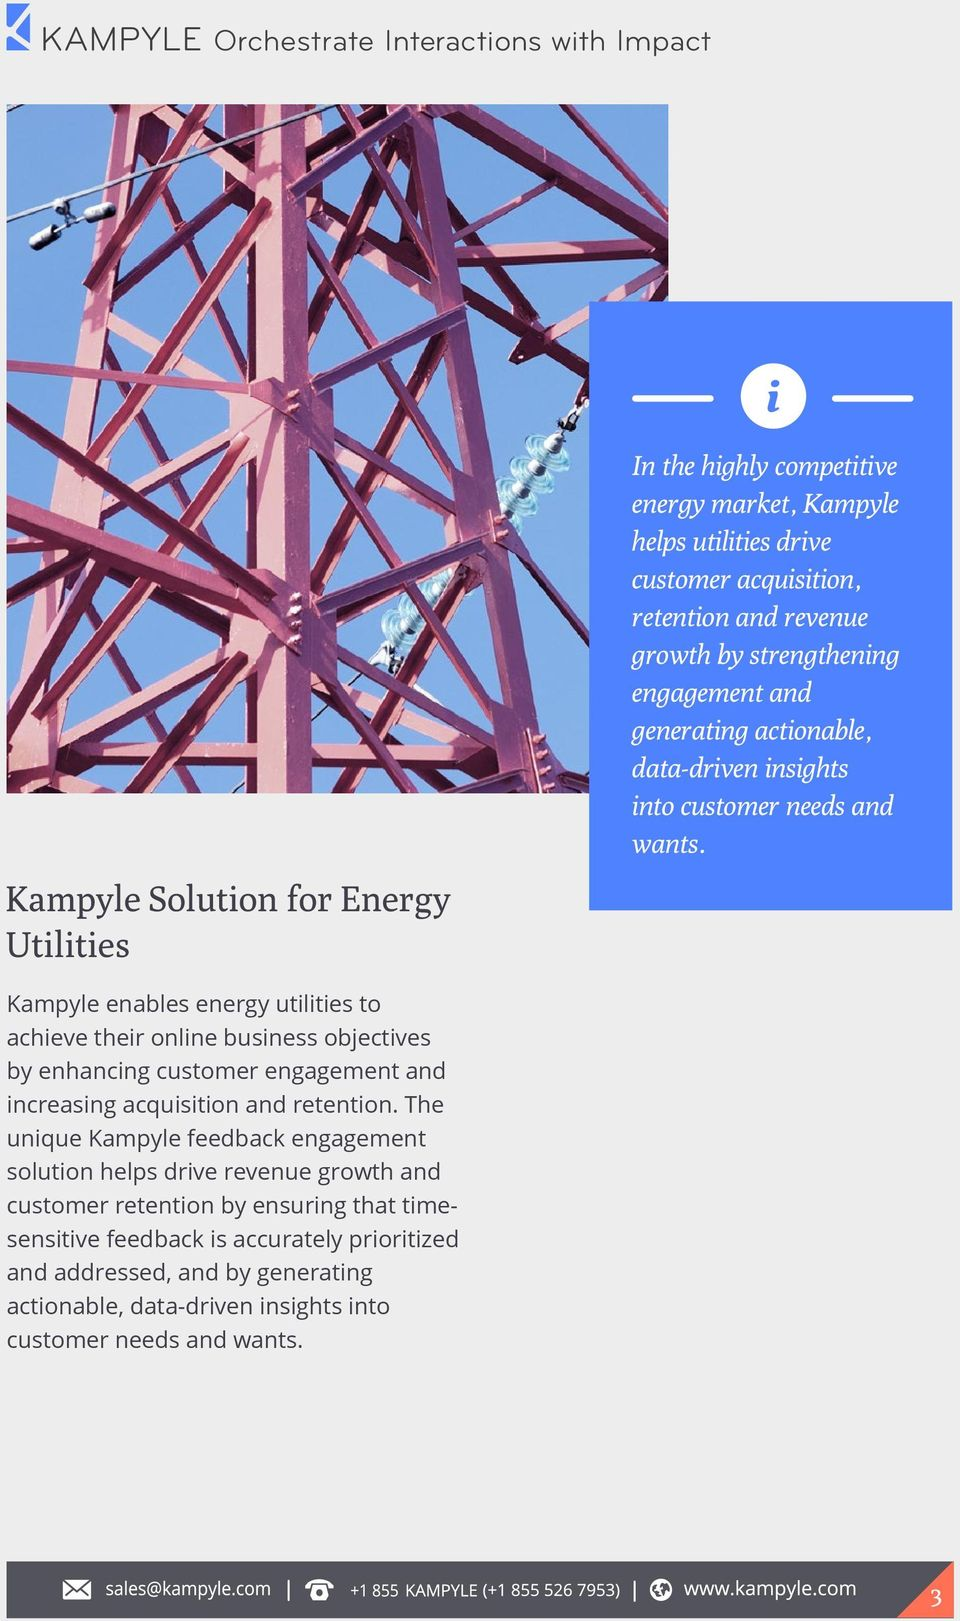 Kampyle Solution for Energy Utilities Kampyle enables energy utilities to achieve their online business objectives by enhancing customer engagement and increasing